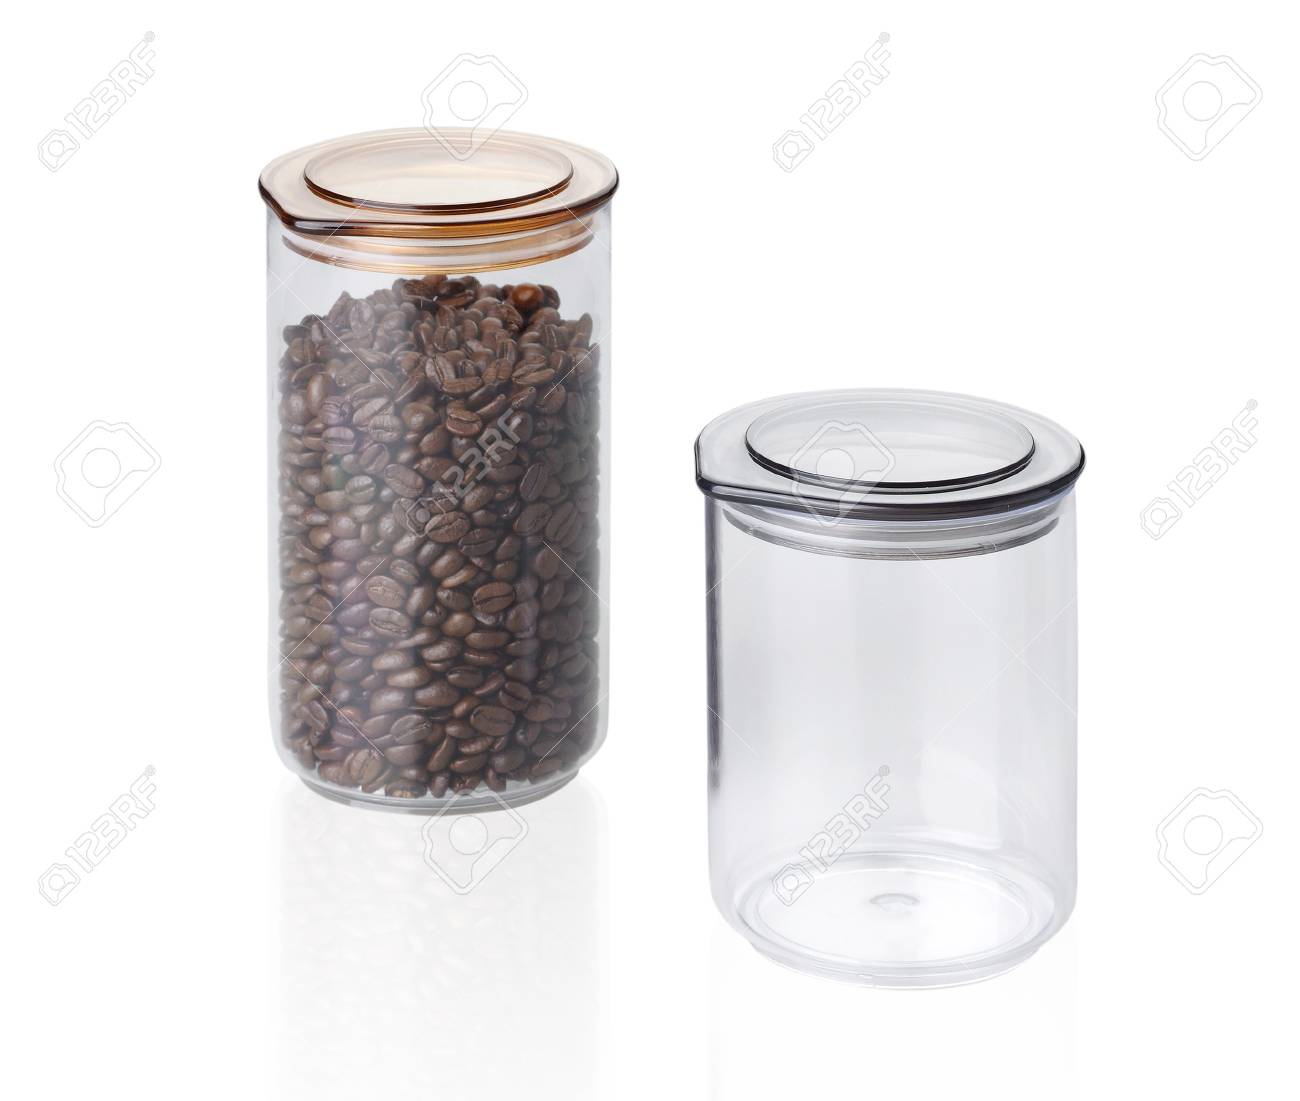 Coffee seeds jug isolated on white background Stock Photo - 18019361